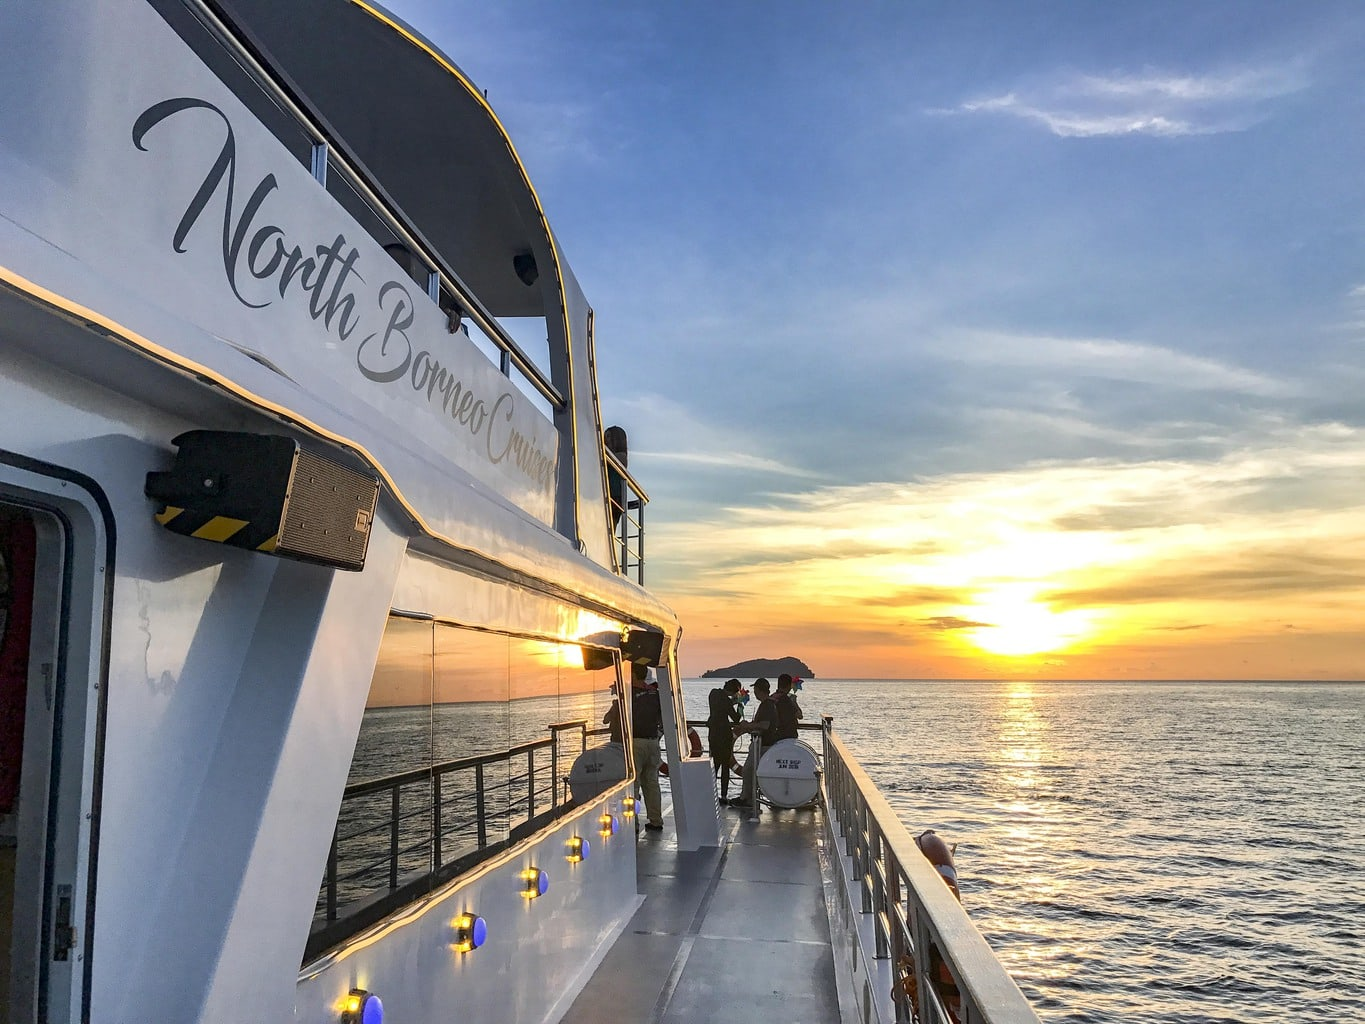 North borneo cruise view